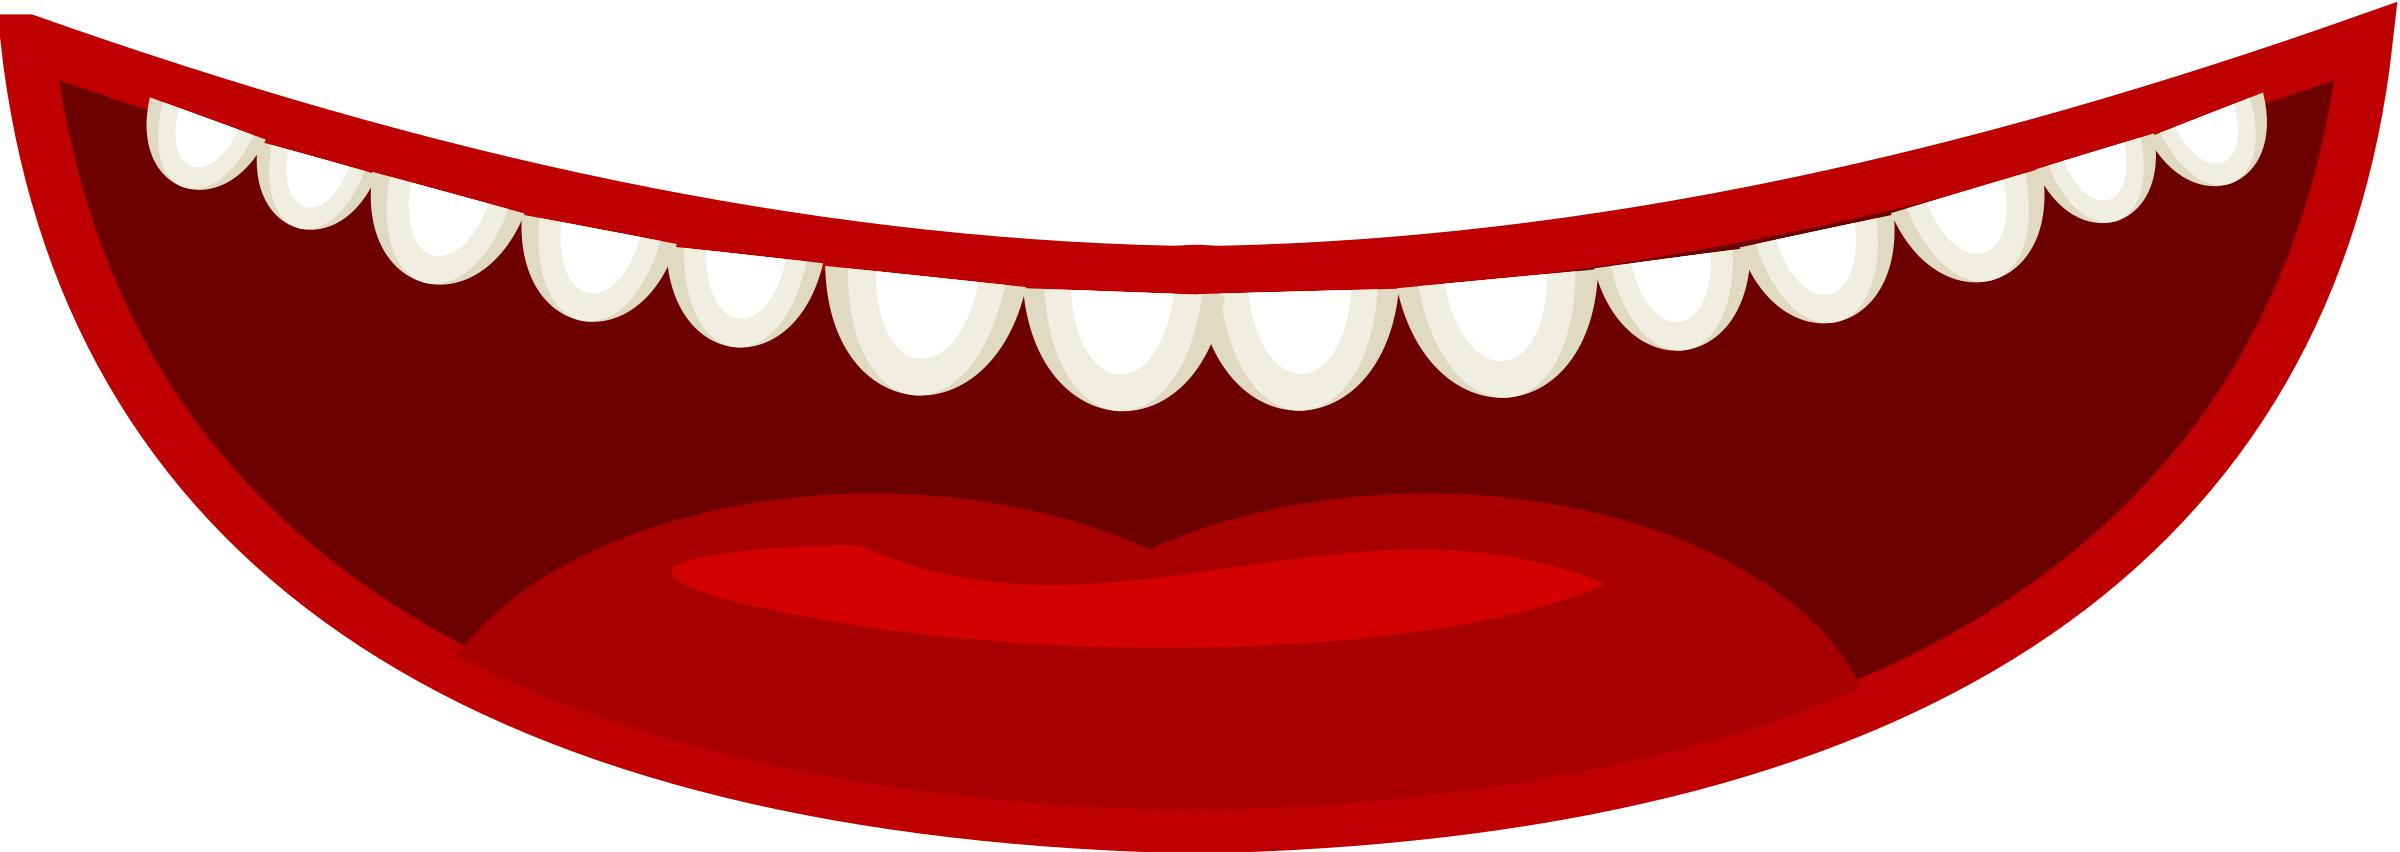 Animations clipart mouth graphic transparent library Free Animated Mouth Cliparts, Download Free Clip Art, Free Clip Art ... graphic transparent library